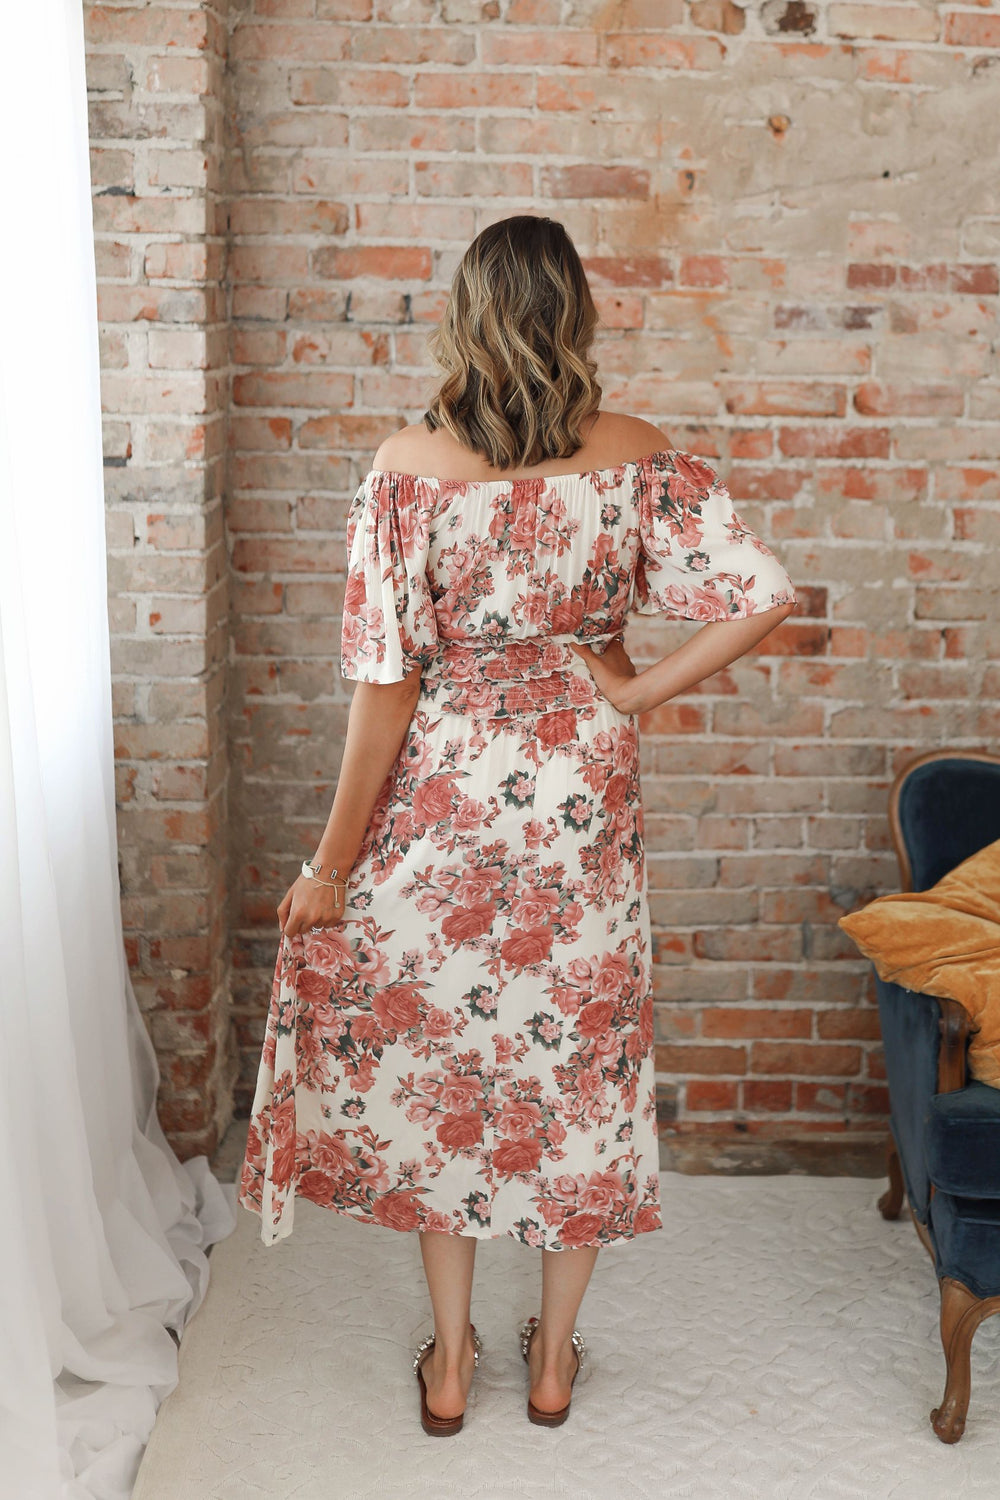 Square Neck Floral Midi Dress Inspired by Shelby Ditch